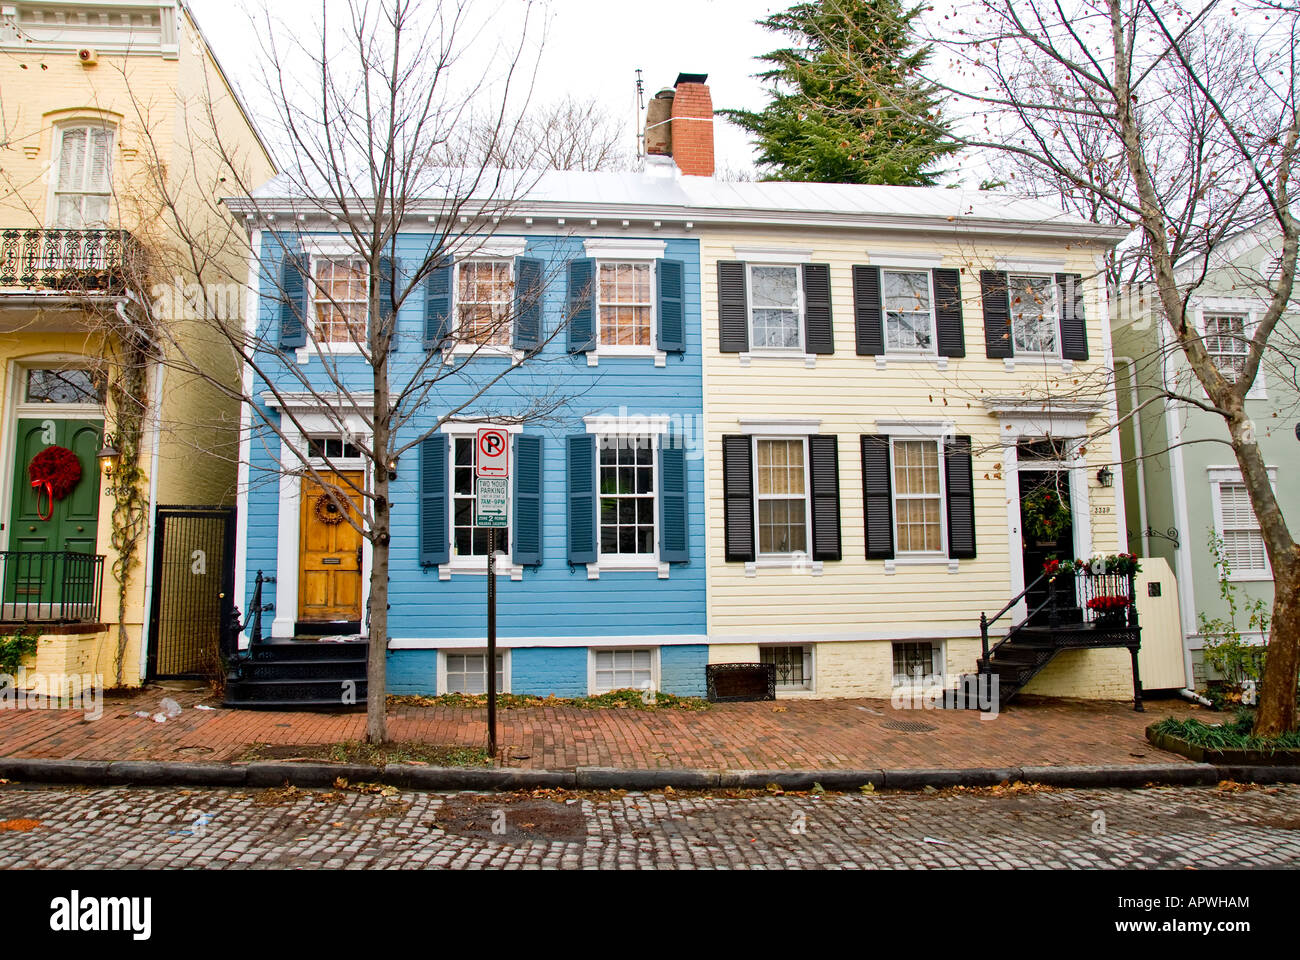 Typical Georgetown Row Houses In Washington Dc Stock Photo